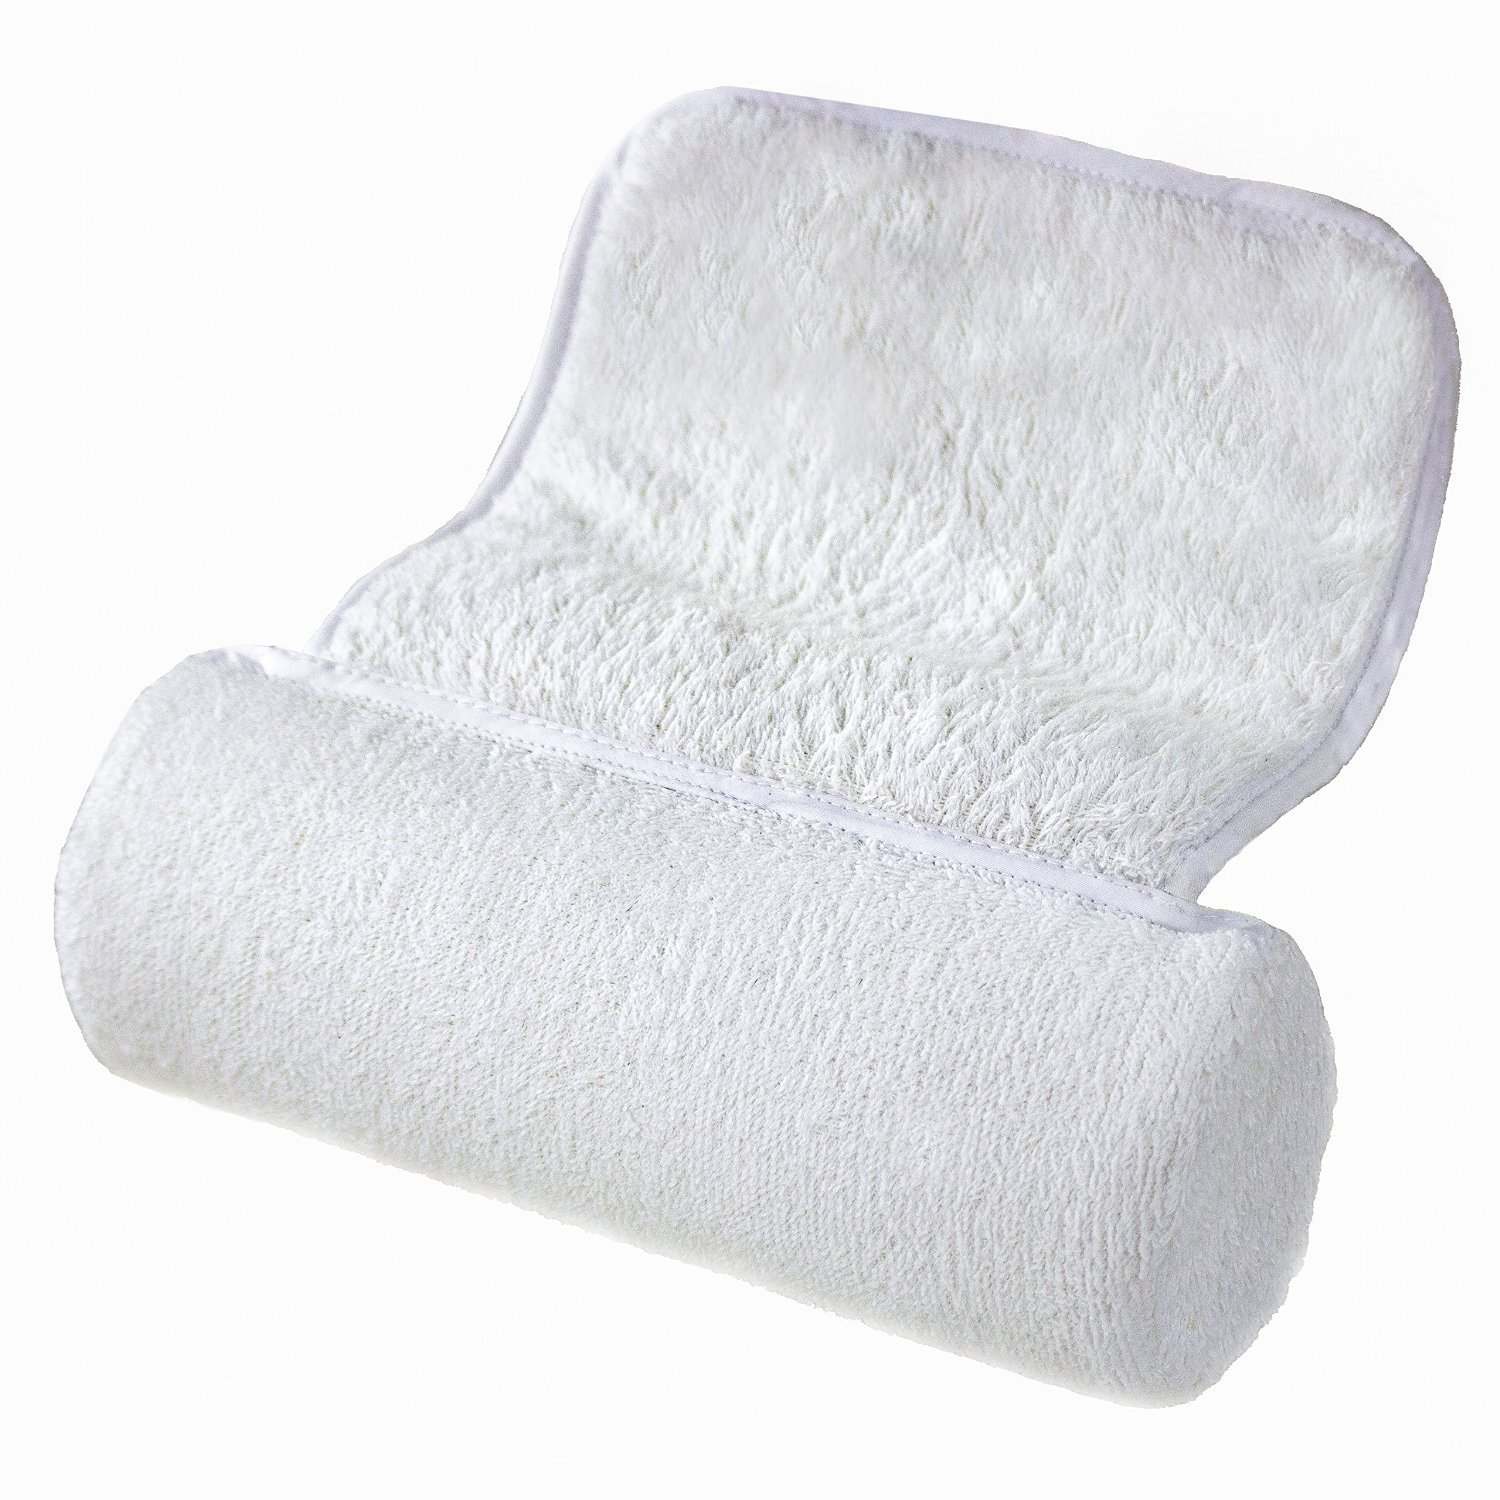 Exceptional Amazon.com : Luxury Bath Pillow For Bathtub With Ultimate Neck Support,  Designed For Extreme Comfort, Non Slip Suction Caps : Beauty